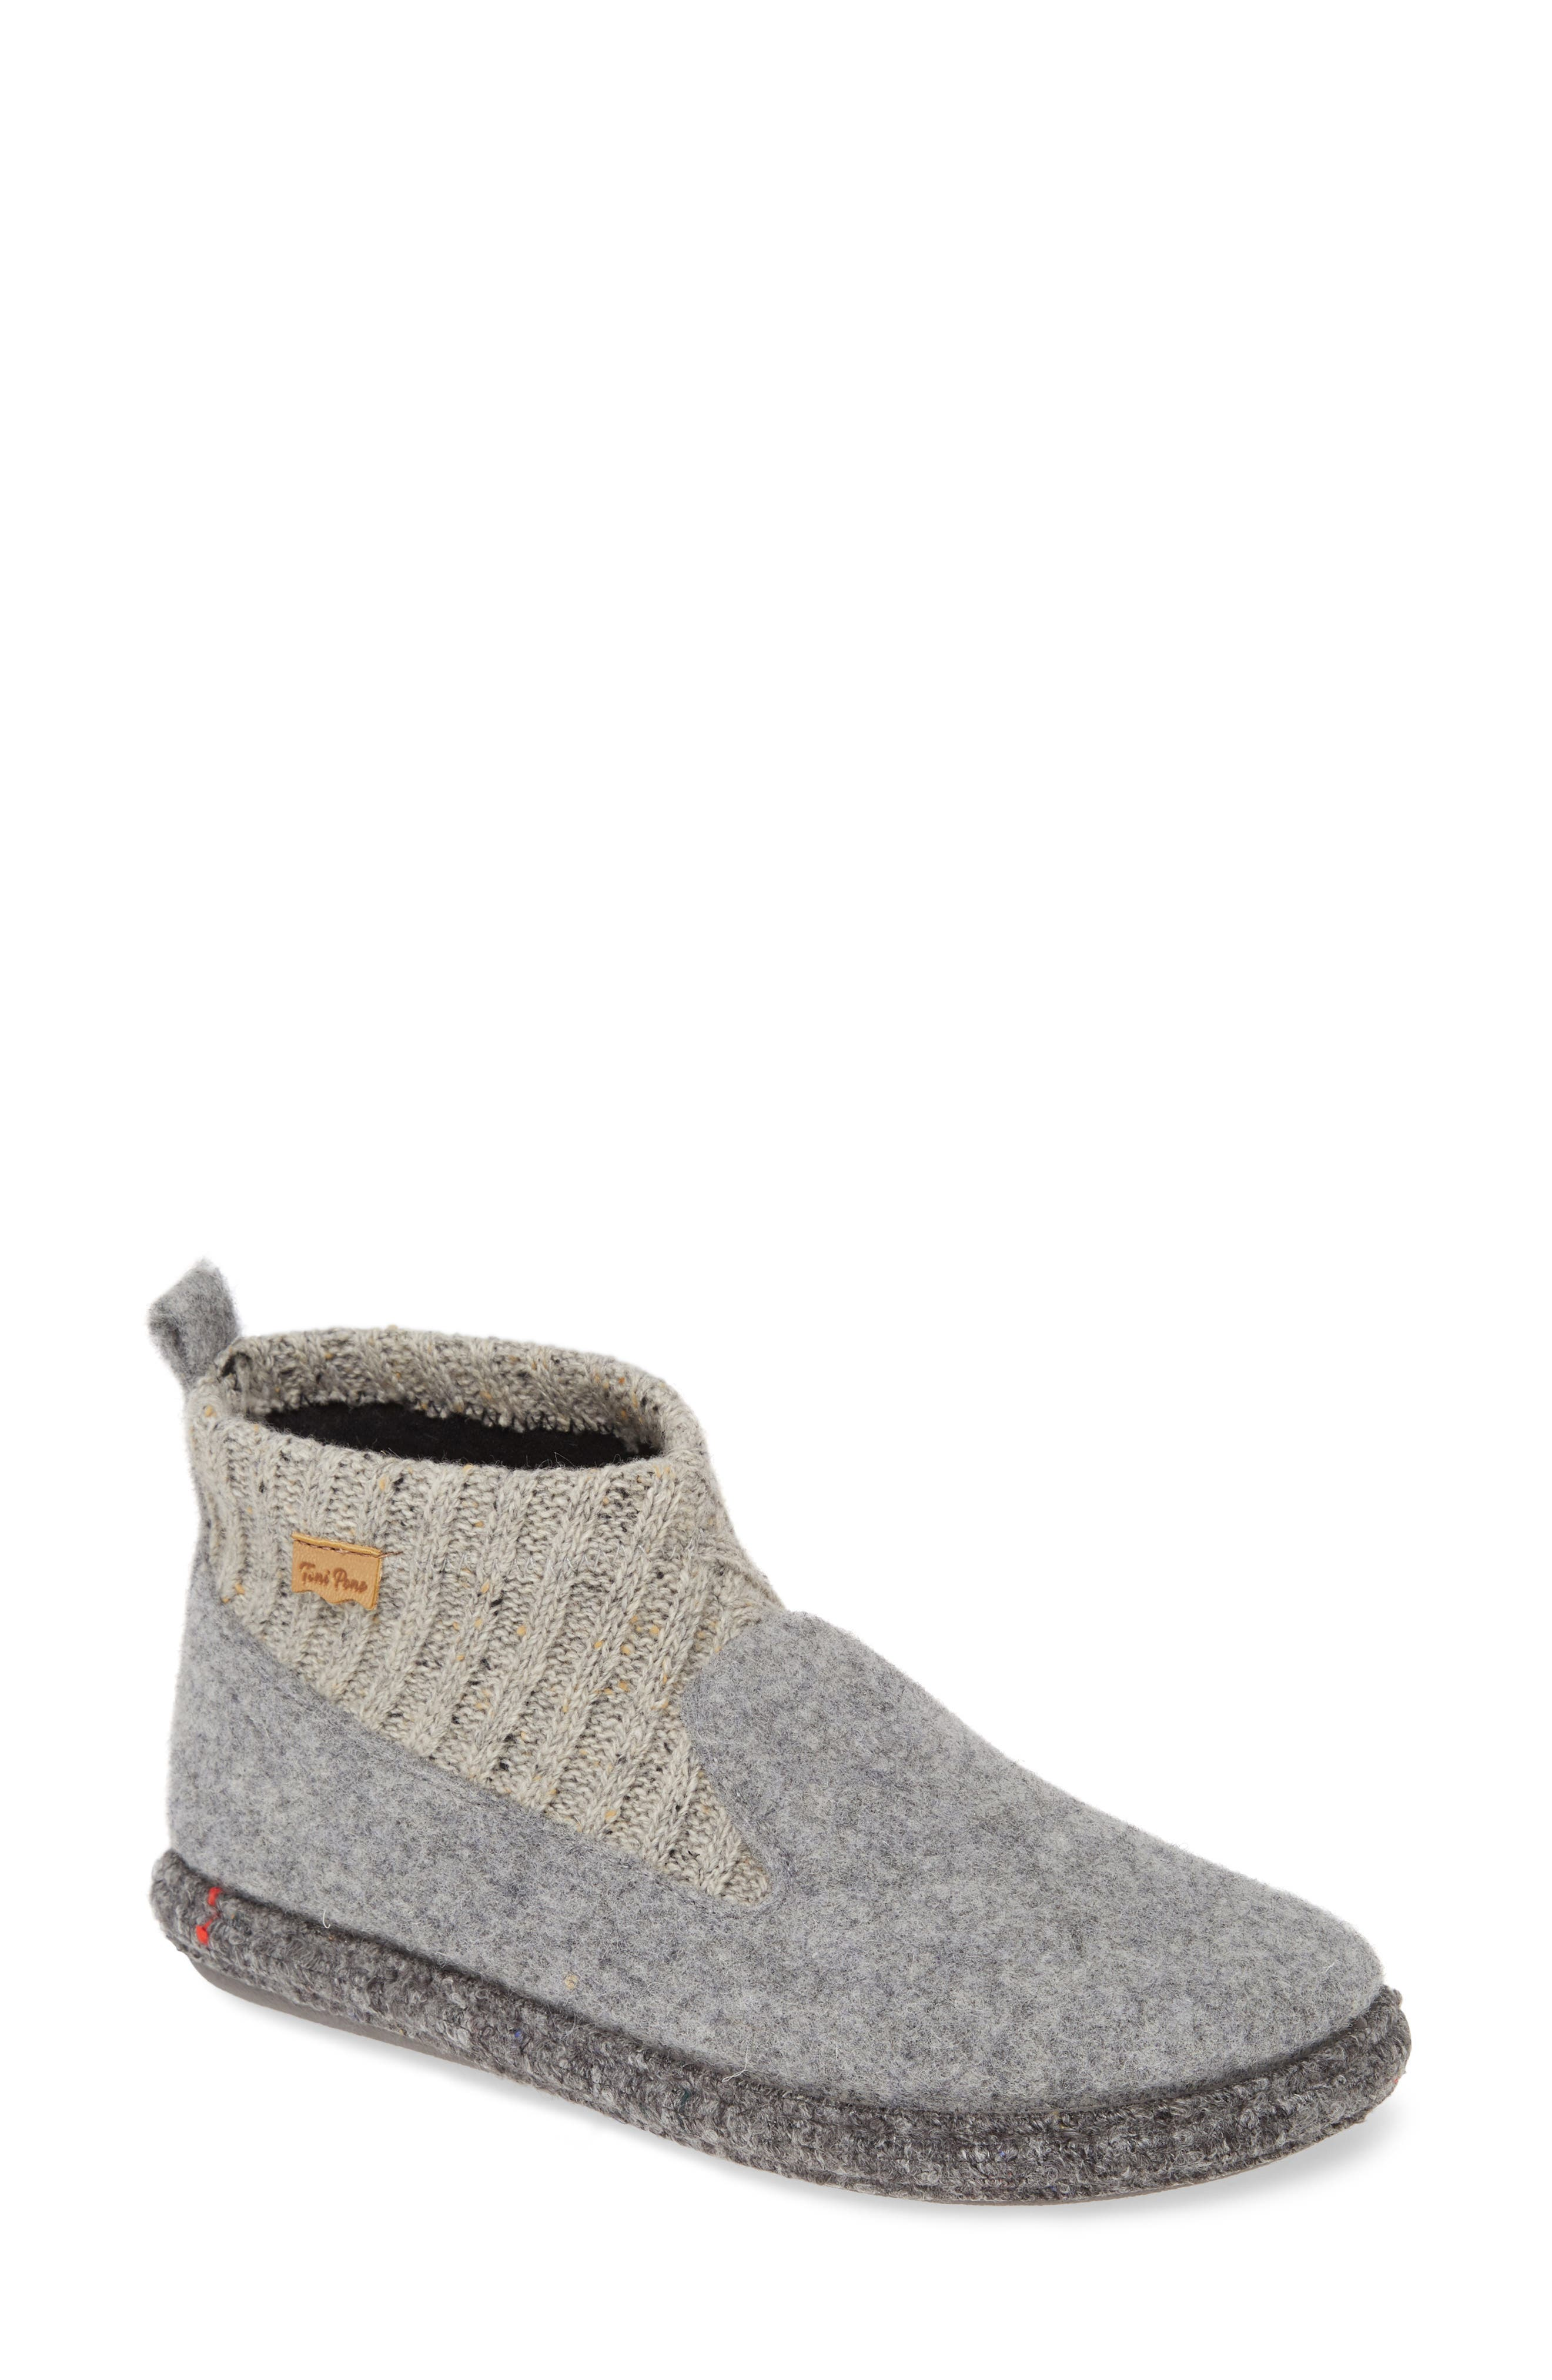 A ribbed cuff and faux-fur lining make this slipper a cozy must-have, with a durable sole that\\\'s ideal for outdoor wear as well. Style Name: Toni Pons Mini Scuff Slipper (Women). Style Number: 5949974. Available in stores.